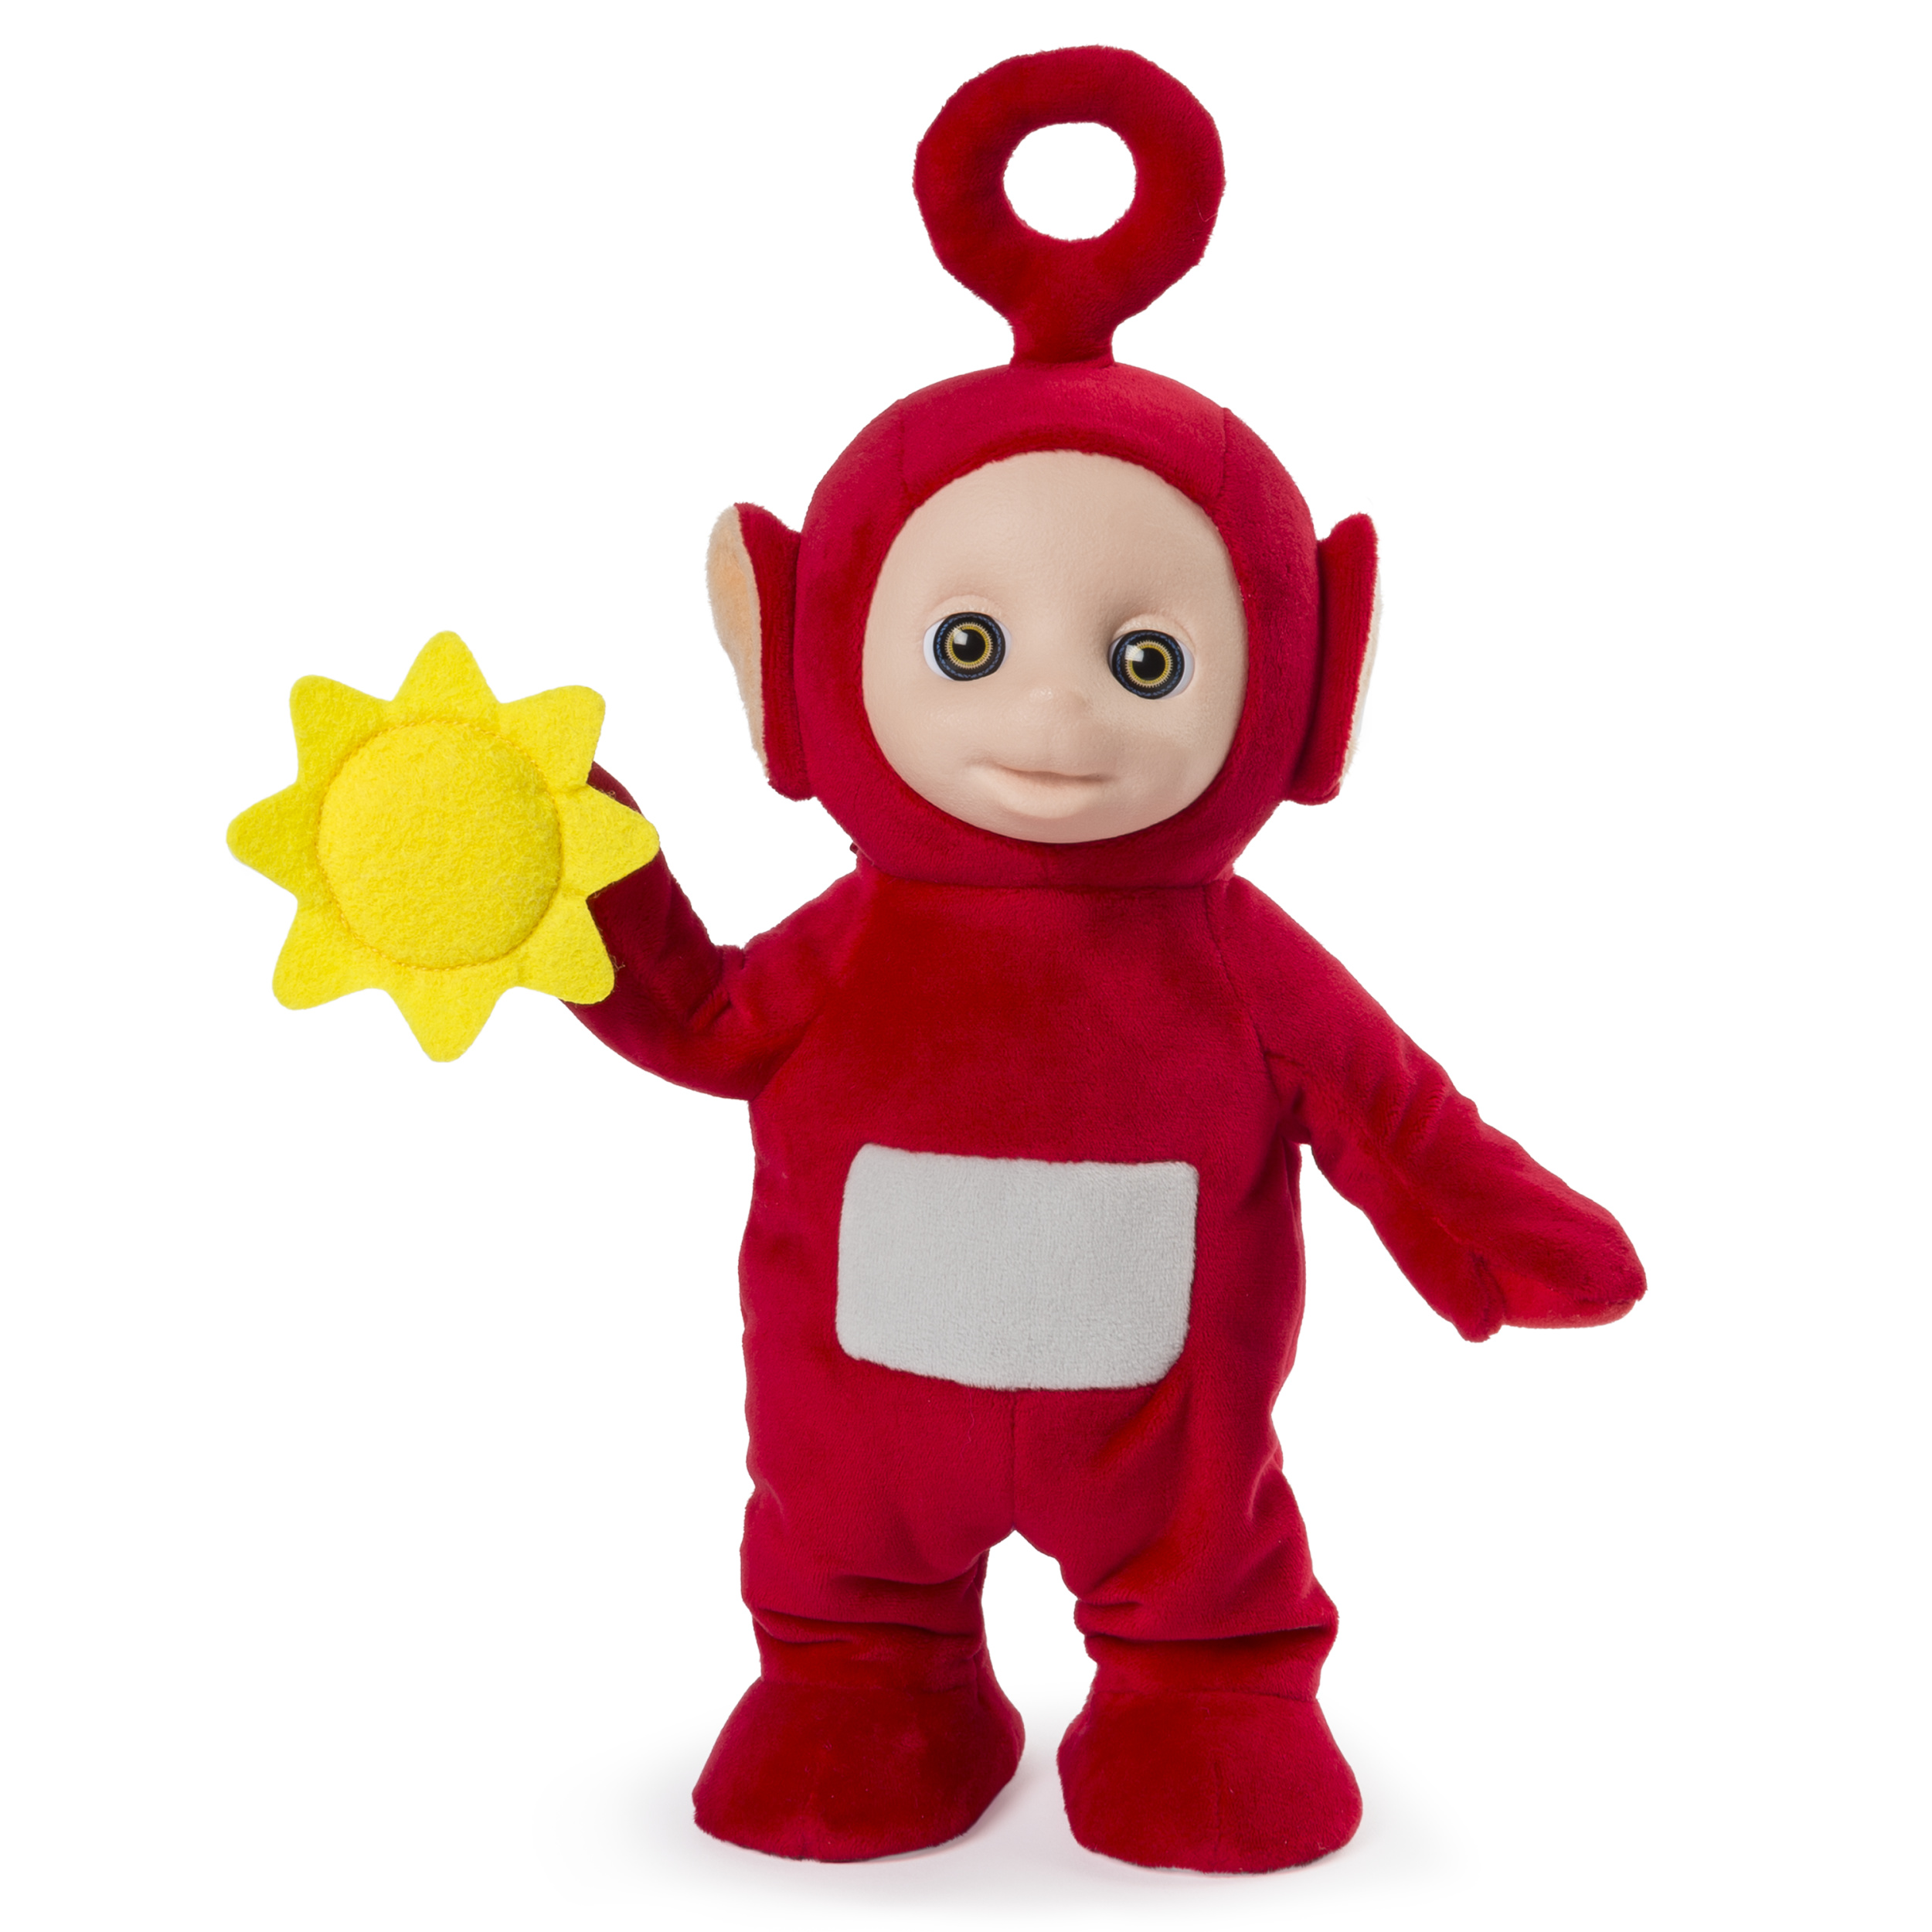 Teletubbies Dancing Always Together Coloring For Kids - ViewLetter.CO 473fa5a918651